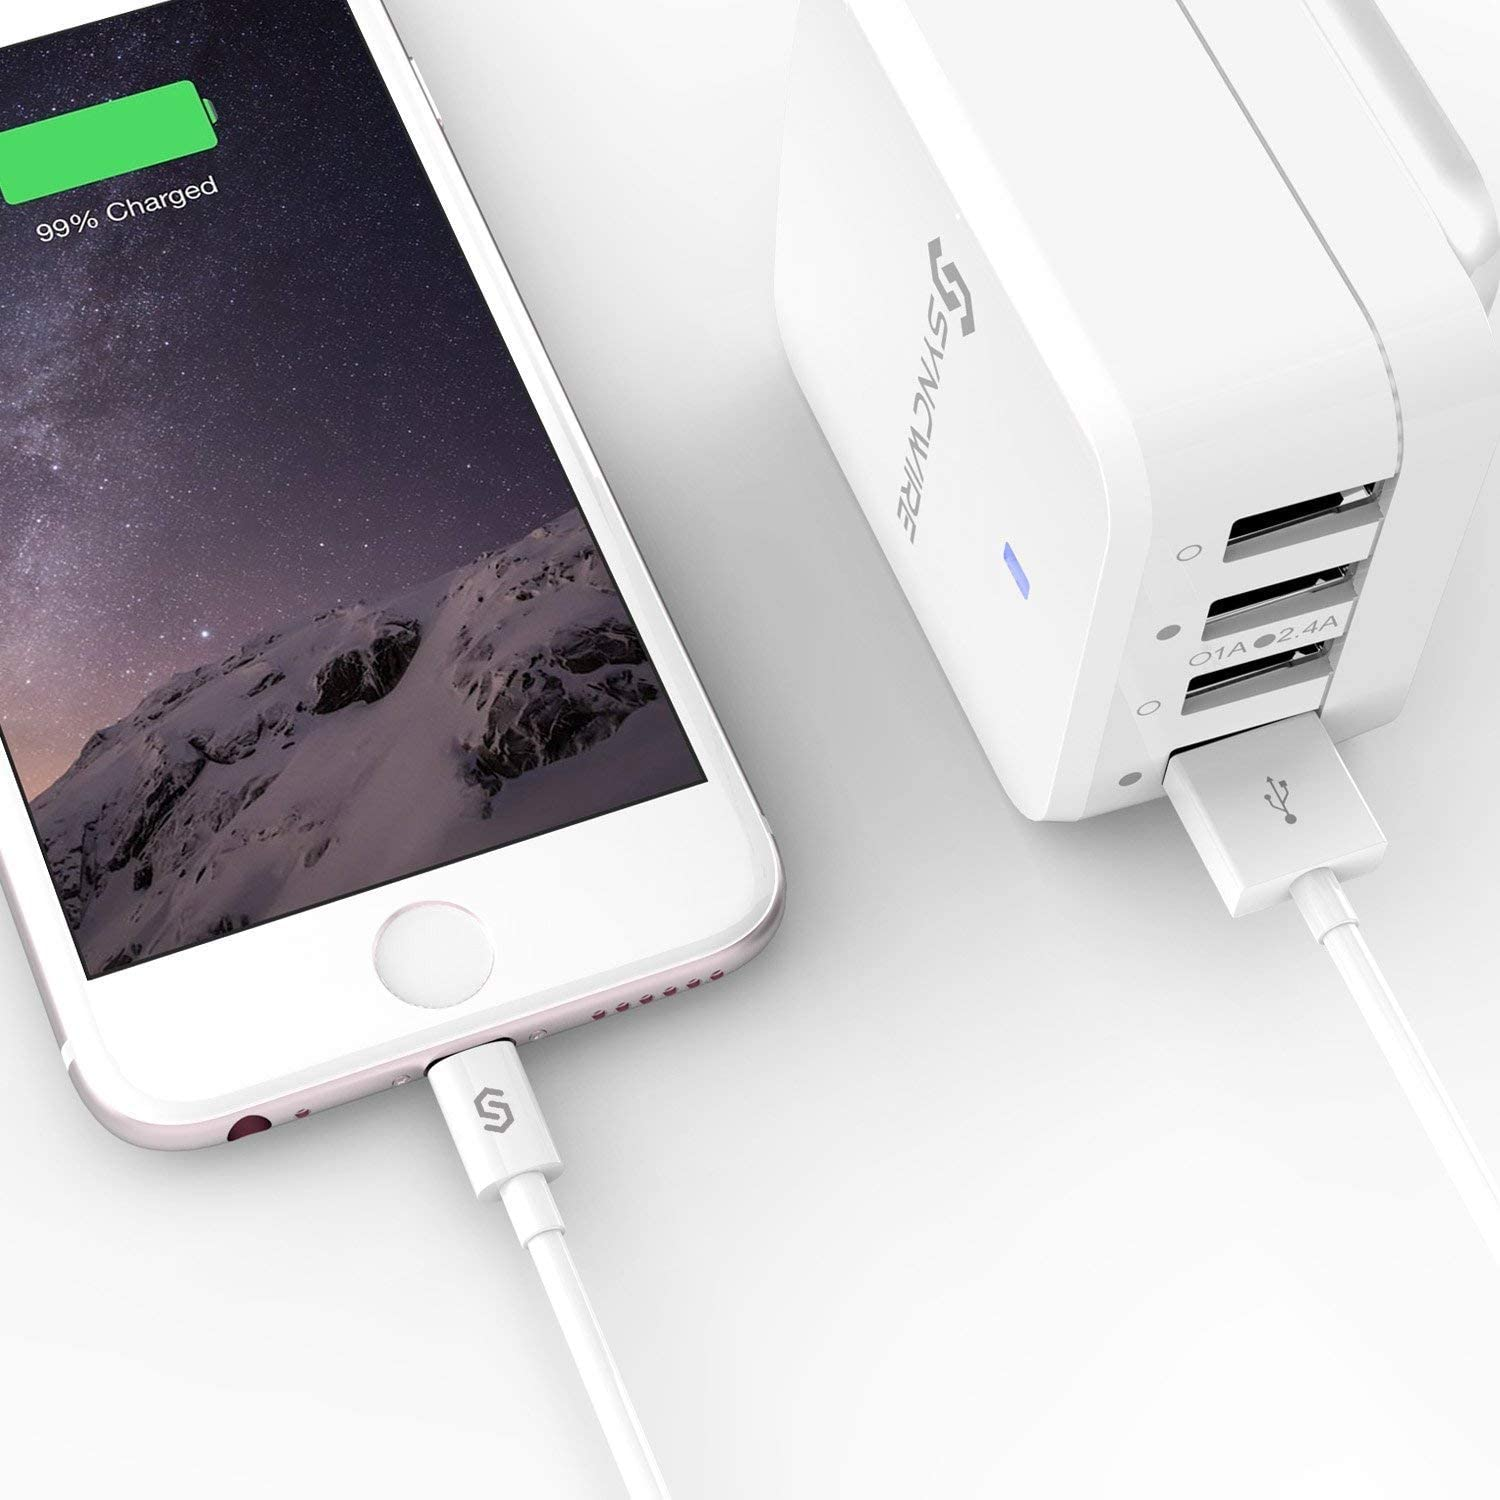 - 6.5ft//2m Long Lightning Cable Apple Fast USB Charging Cable Lead for iPhone 11 XS MAX XR X 8 Plus 7 Plus 6s 6 Plus SE 5 Syncwire Apple iPhone Charger Cable Upgrade Apple MFi Certified iPad iPod